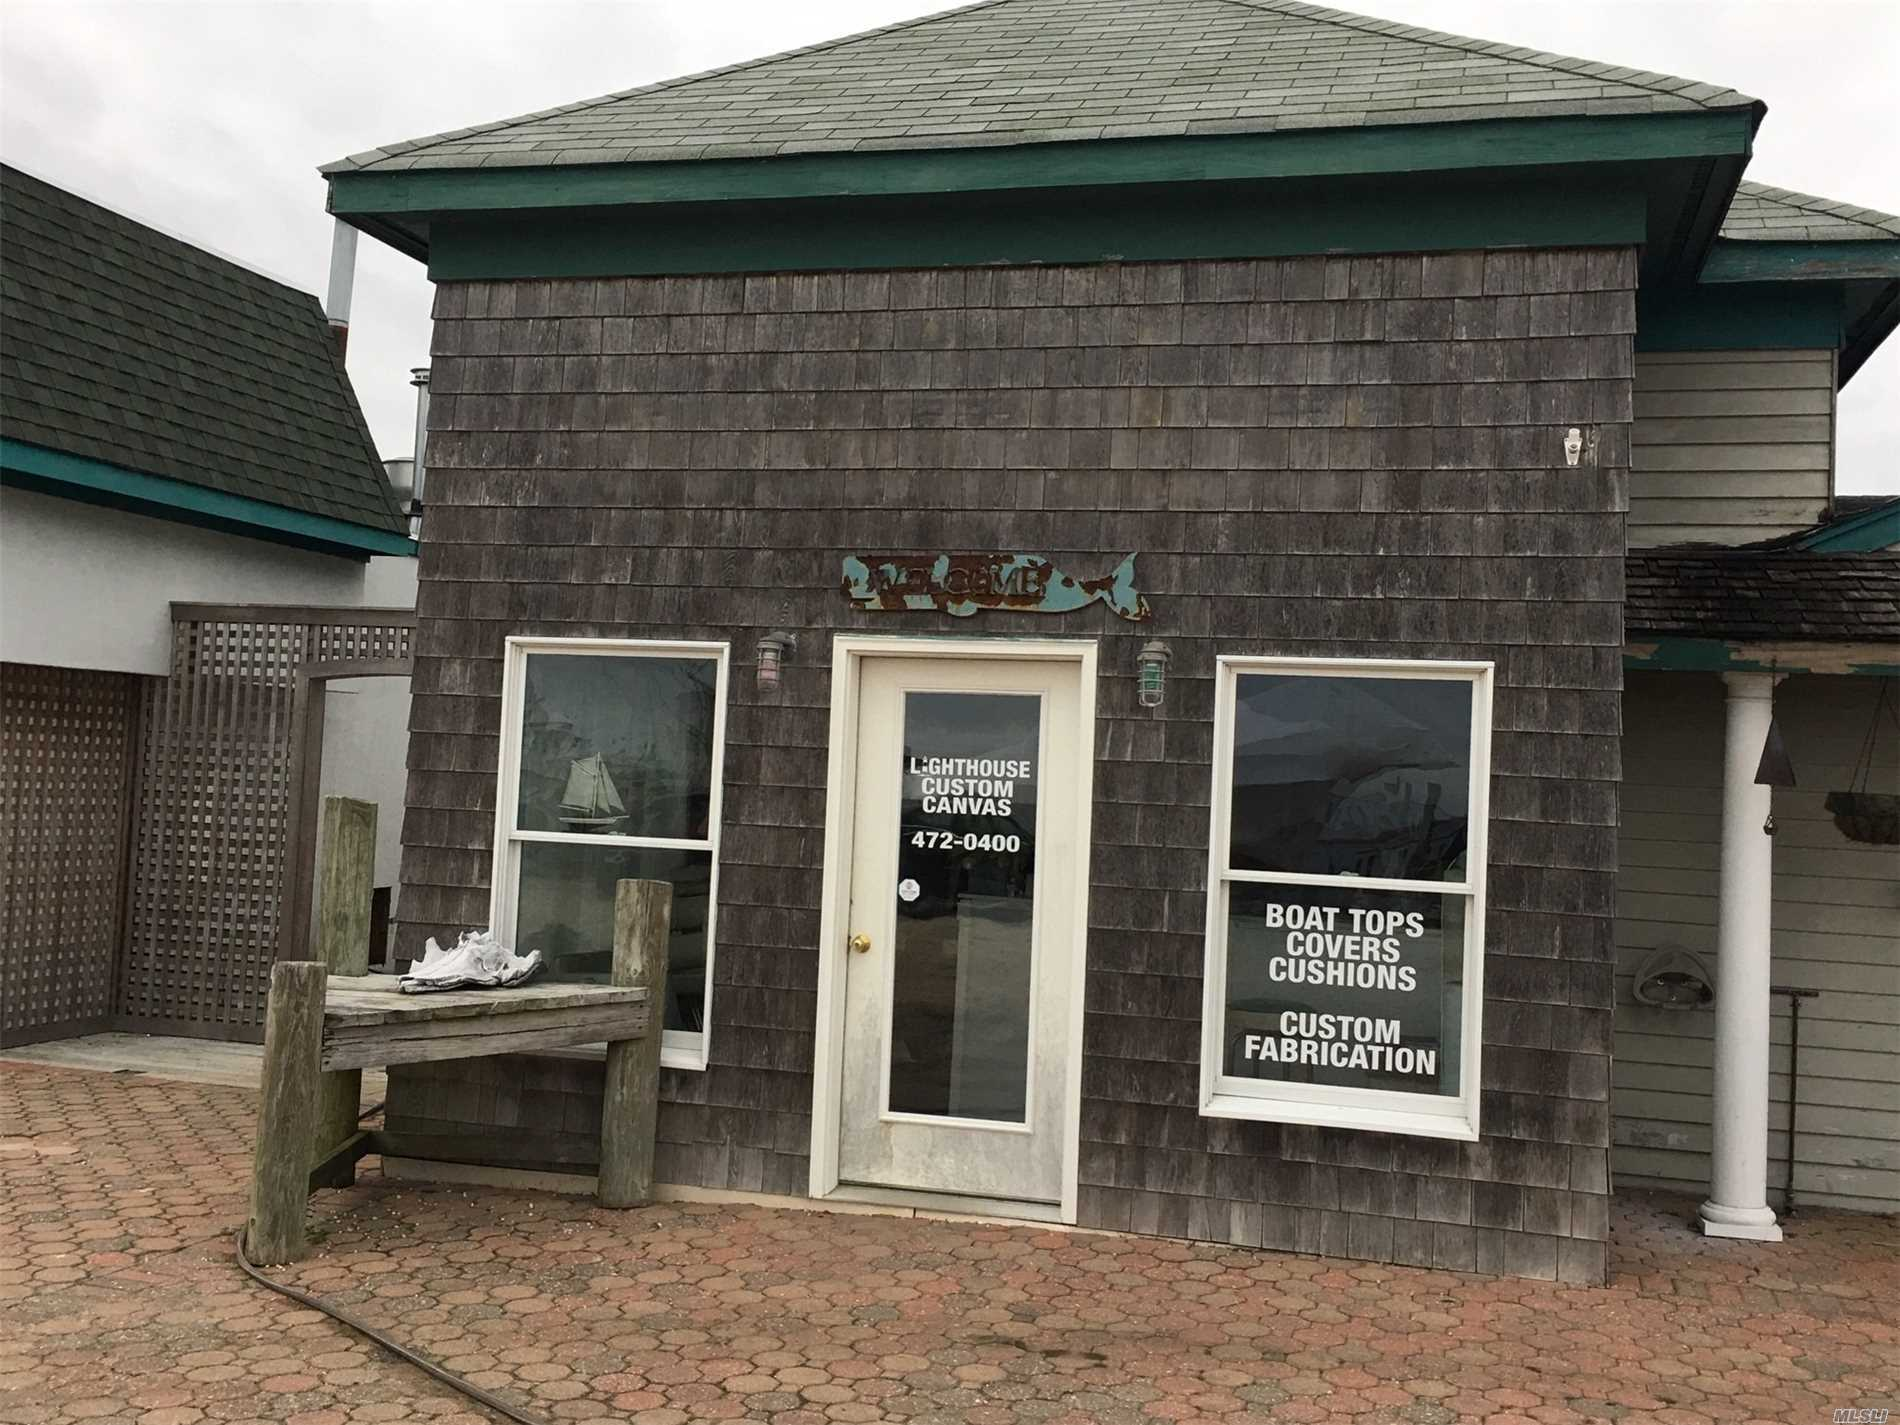 Largest Marina In Area. Shop Ideal For Any Marine Use - Boat Dealer, Marine Equipment Dealer. Unit Is 17'Wide X 28' Deep With A Nice Storefront Directly On The Harbor Front. Beautiful Front Row Seat For The Best Water Views. Other Tenants Include Restaurant, Bait & Tackle, Boat Charter, Fishing Trips, Water Adventures, Mechanics Shop, Slip Rentals.